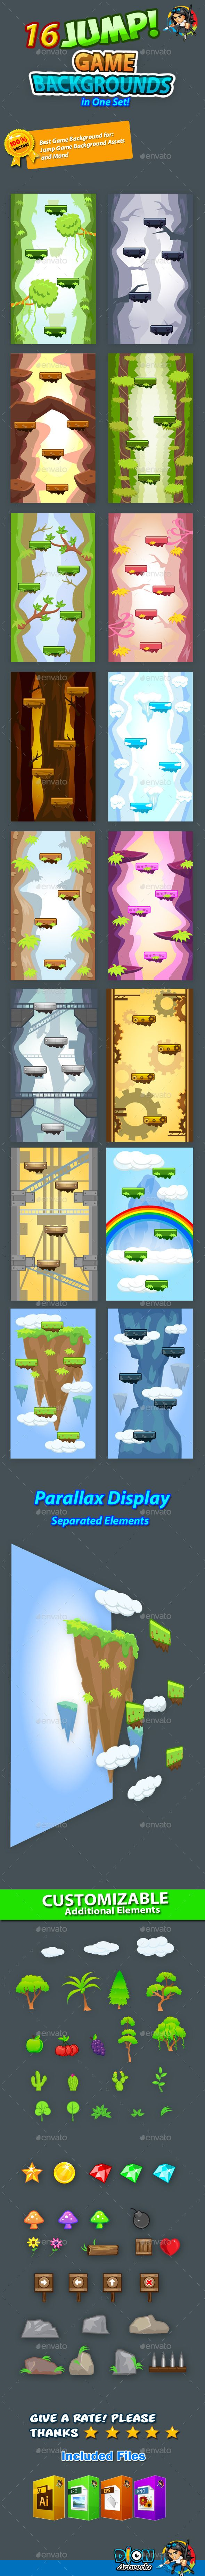 Jump Game Backgrounds in One Set Download here: https://graphicriver.net/item/jump-game-backgrounds-in-one-set/11069562?ref=KlitVogli